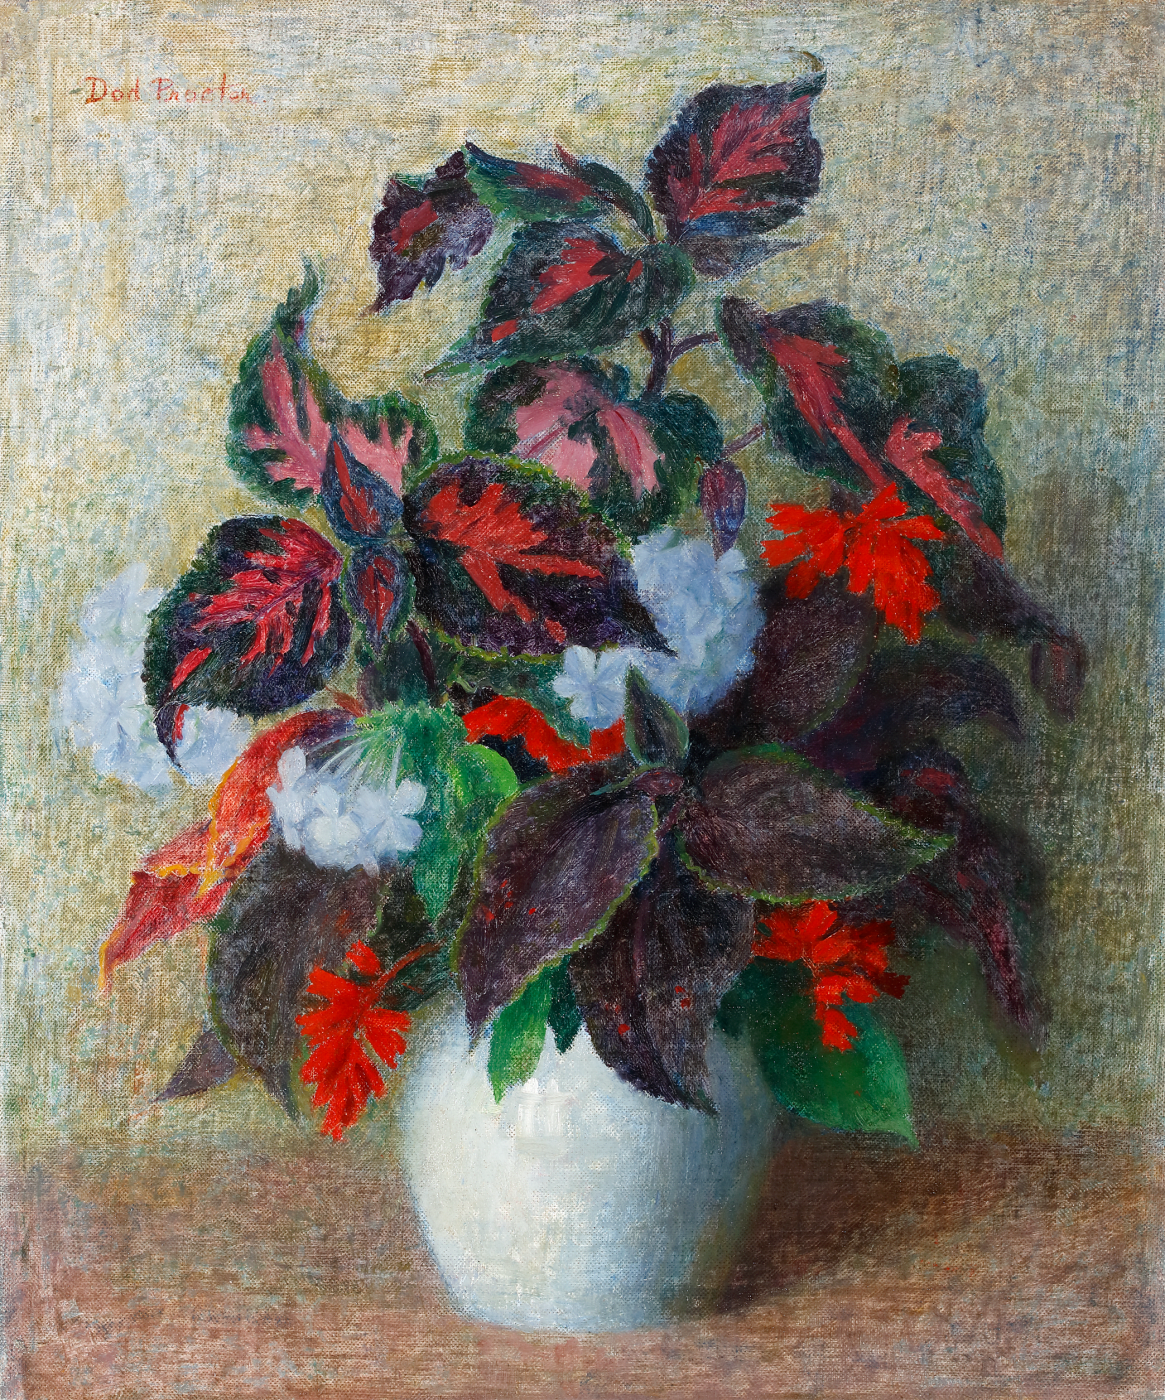 Oil on canvas, Modern British Painting by female artist Dod Procter, displaying a blue vase containing red and green flowers.